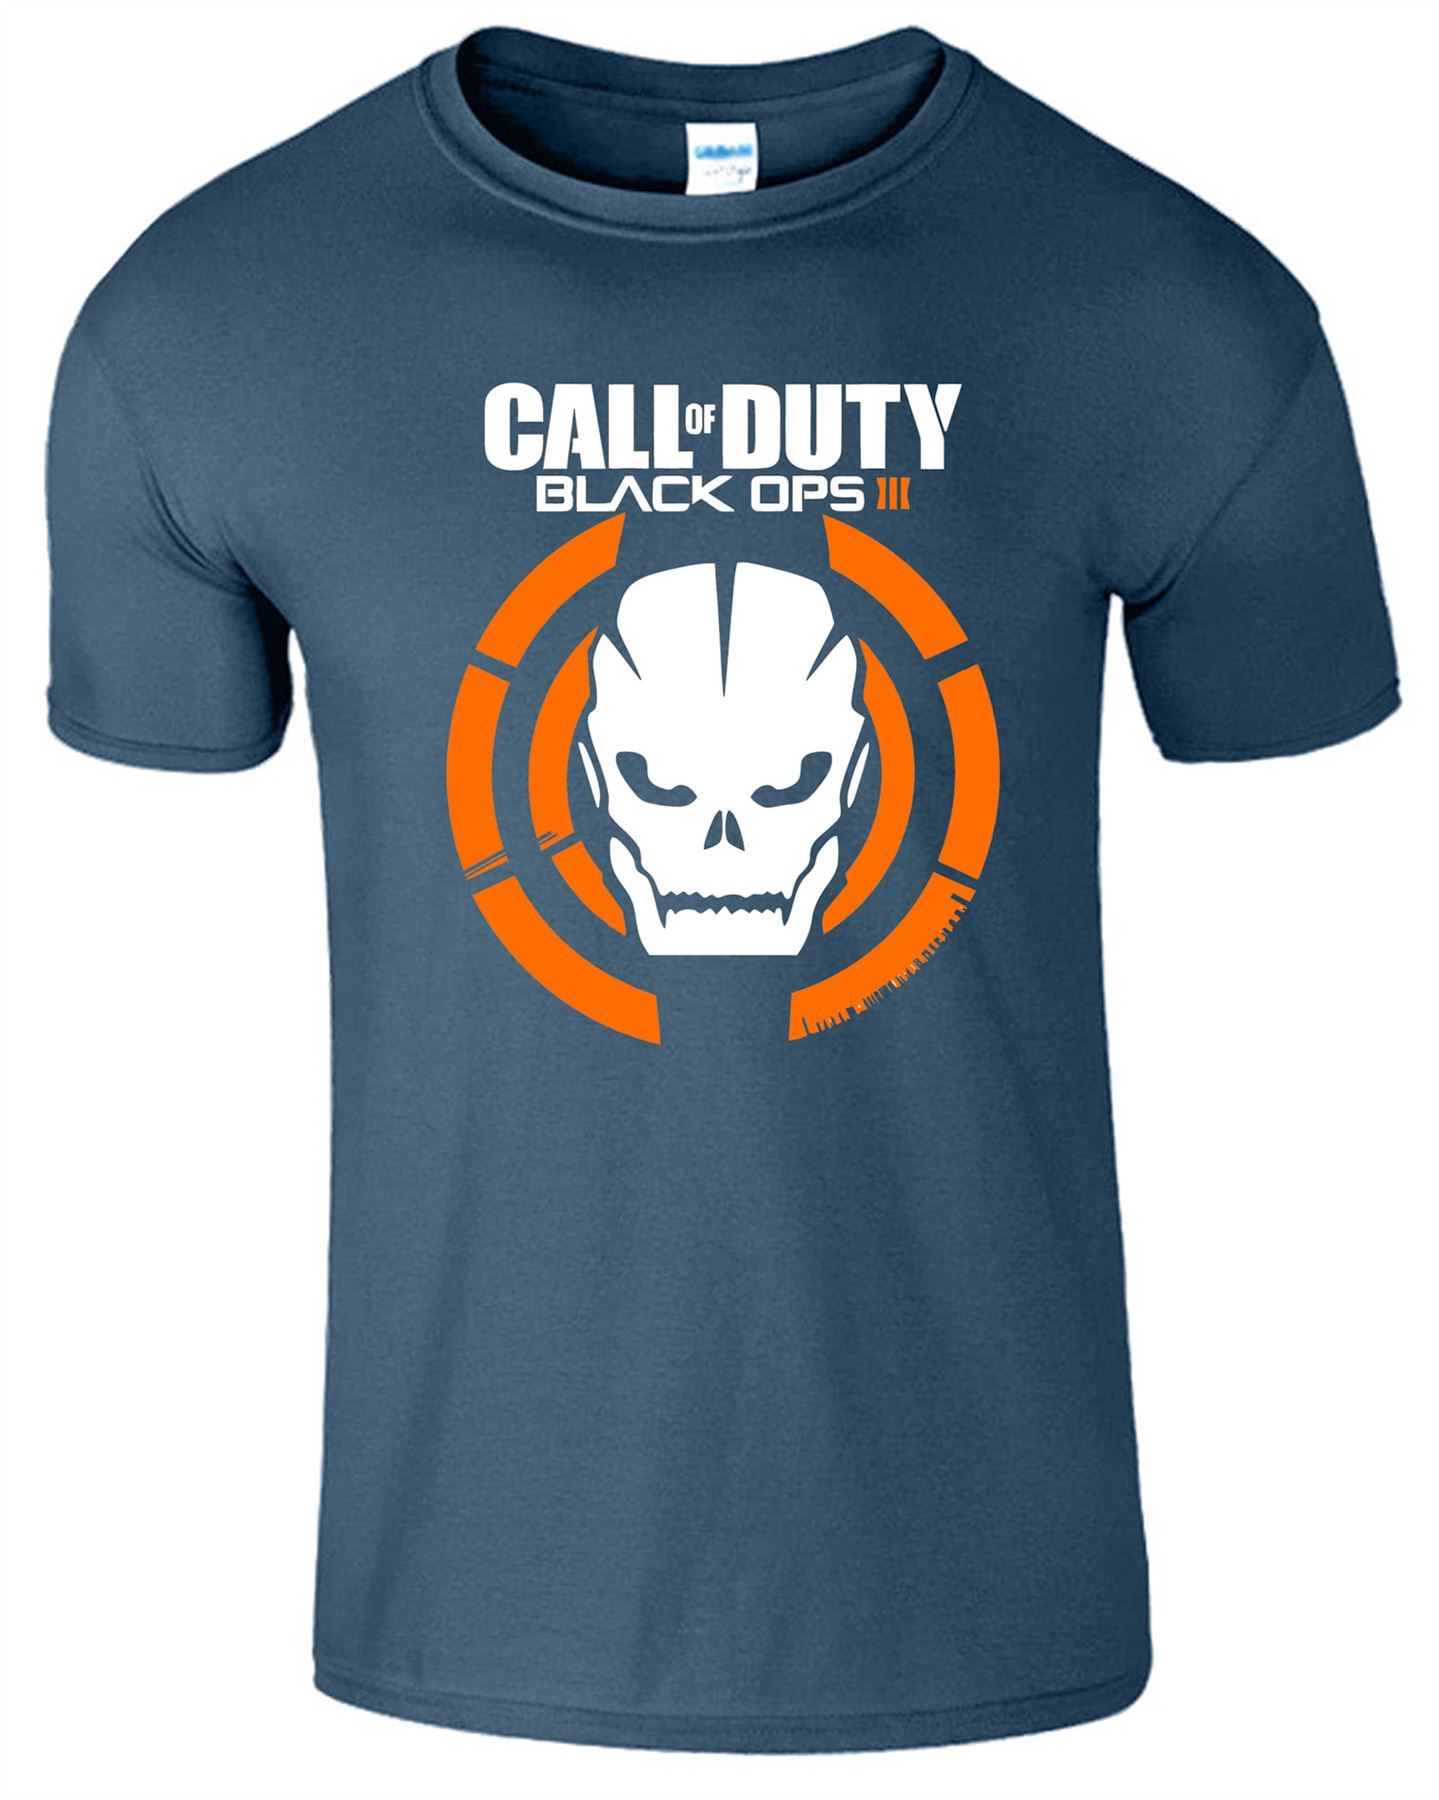 Duty-Black-Ops-Xbox-PS3-PS4-Game-Logo-With-Skull-Mens-Tshirt-Tee-Top-Gift miniatuur 4